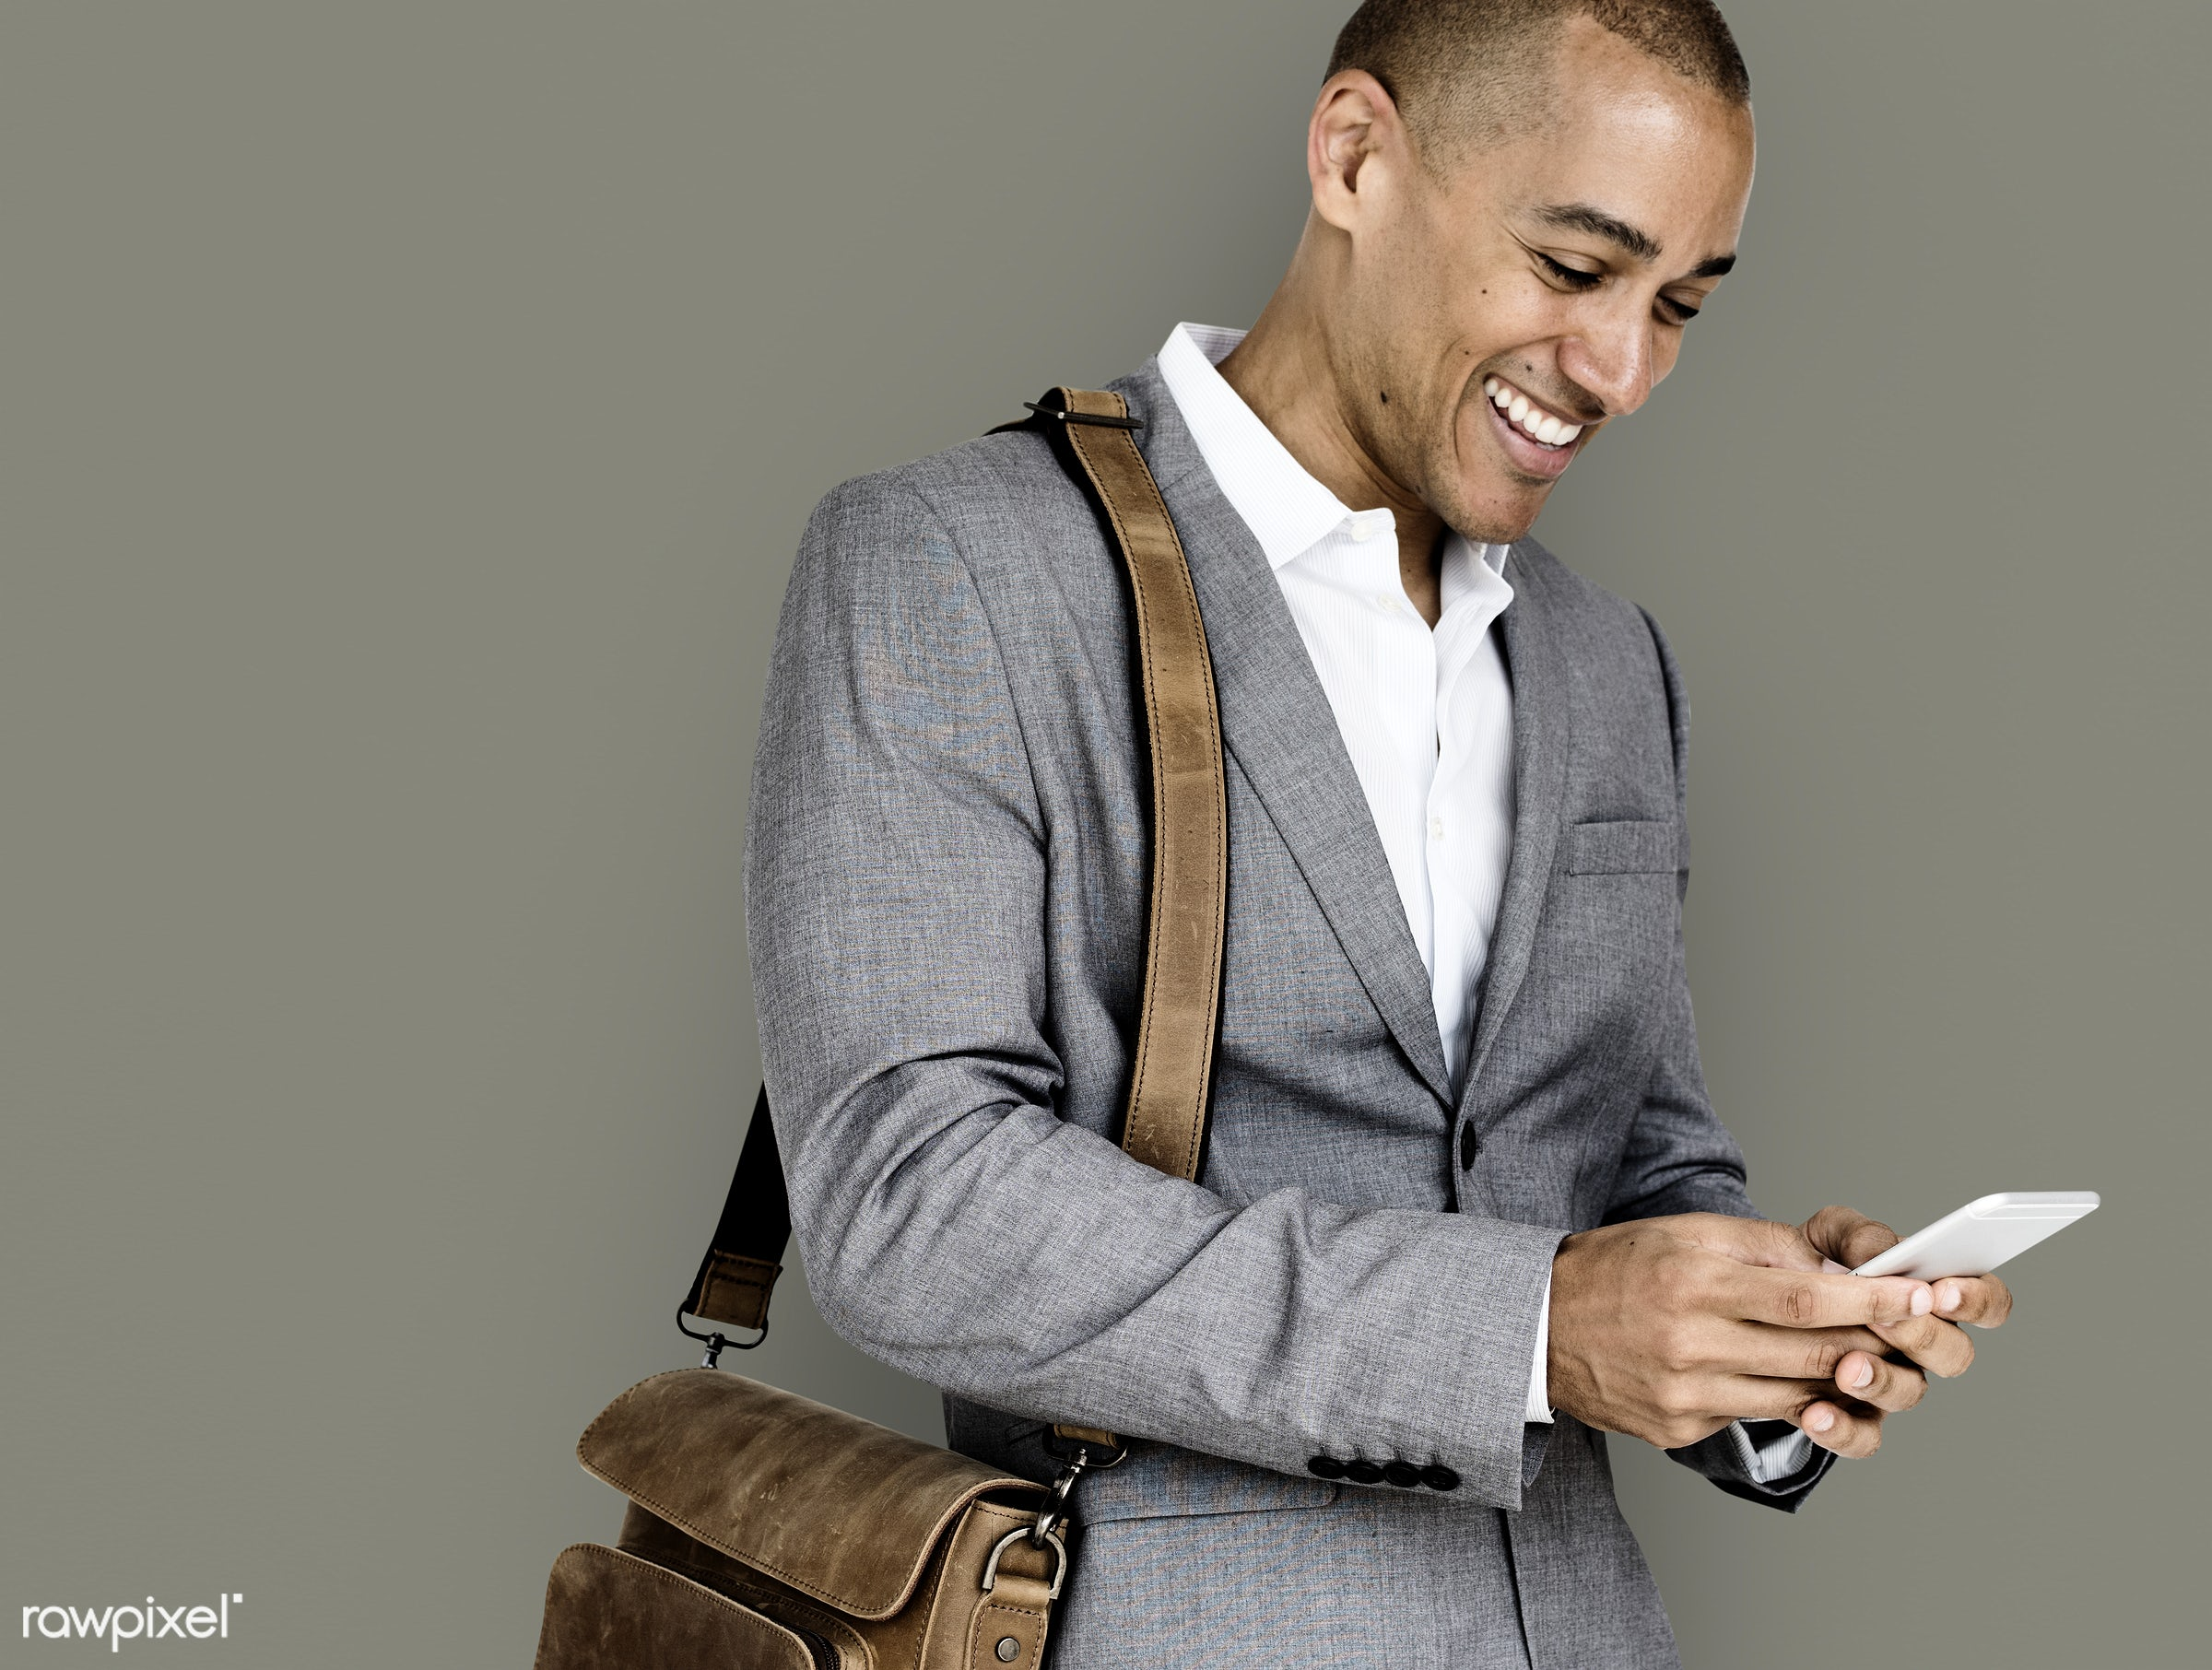 african descent, background, business attire, business man, business wear, cheerful, expression, formal, formal attire,...